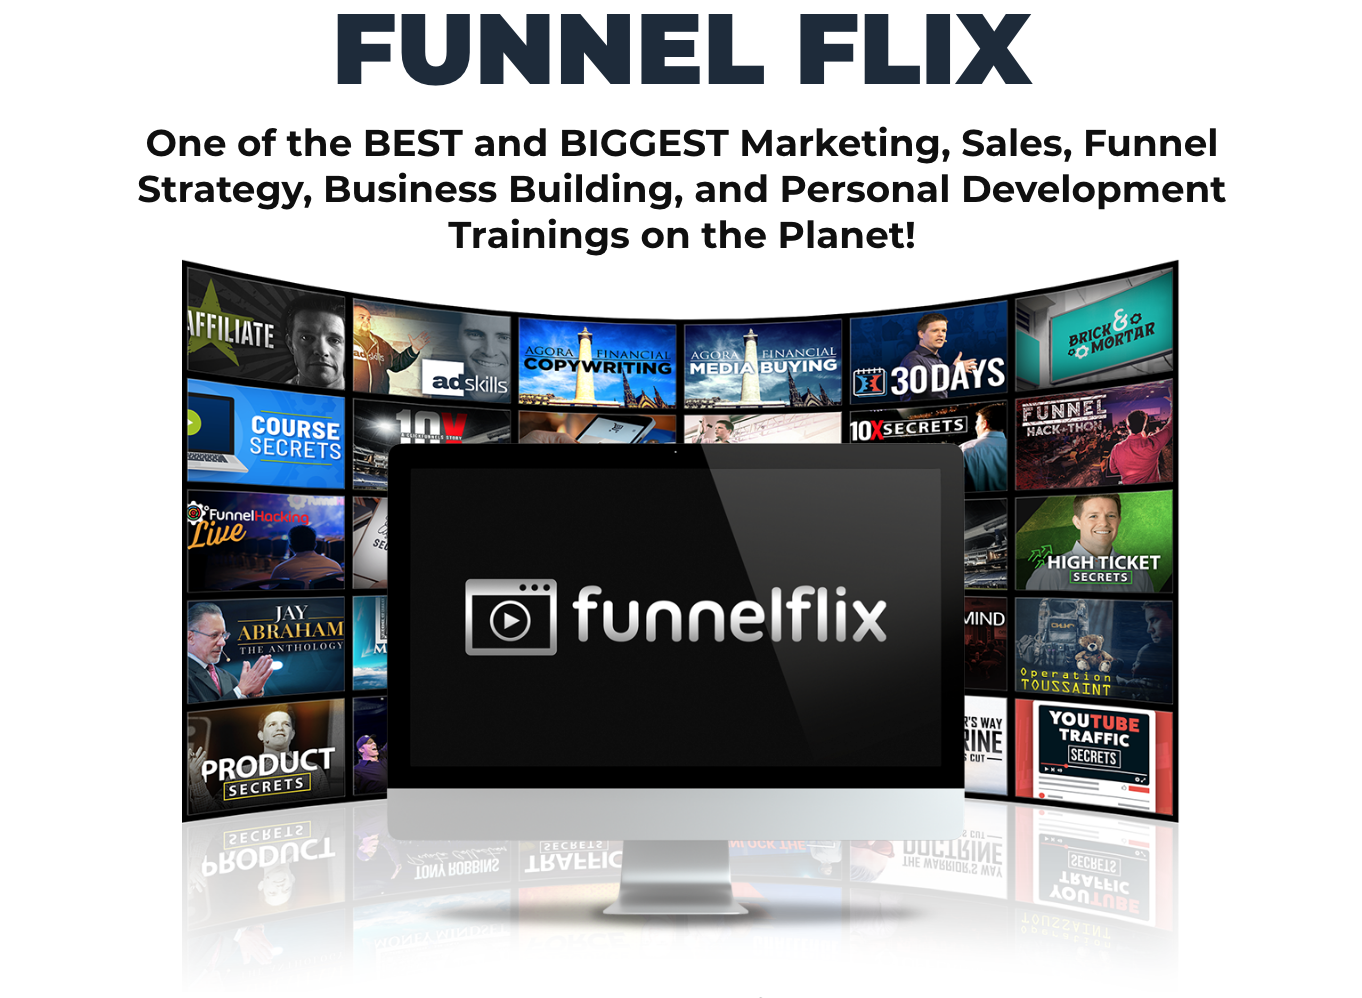 Funnelflix is one of the best and biggest business & personal development trainings on the planet.